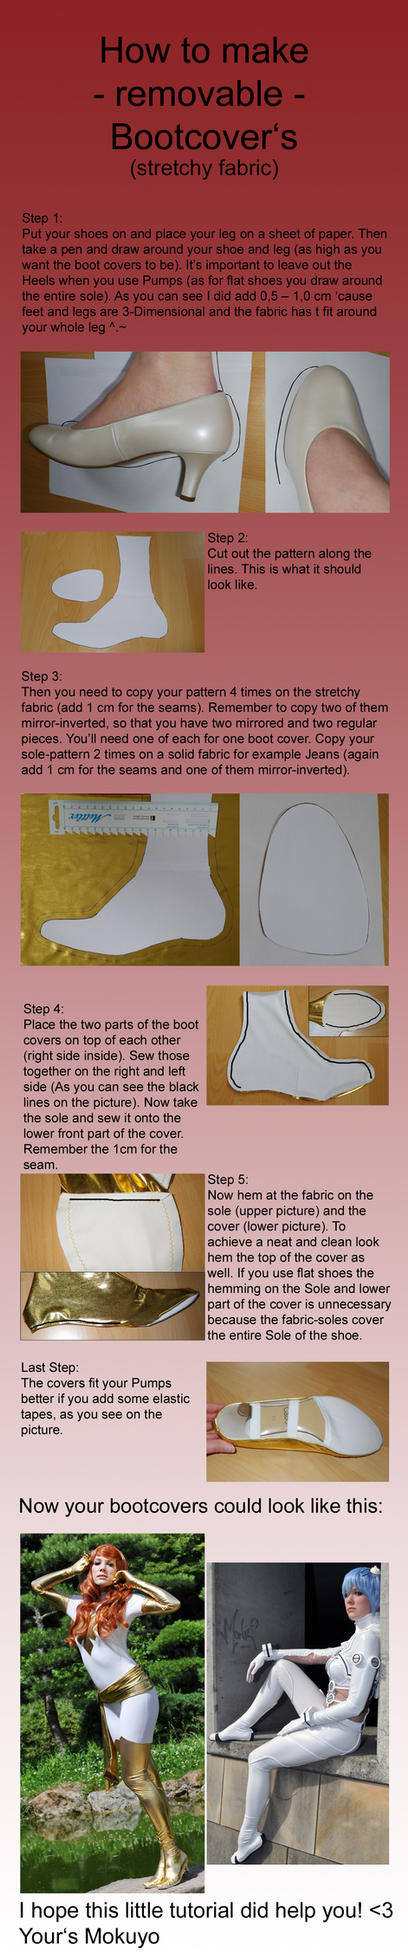 How to make Bootcovers Part 2 of 2 - removable by Mokuyo